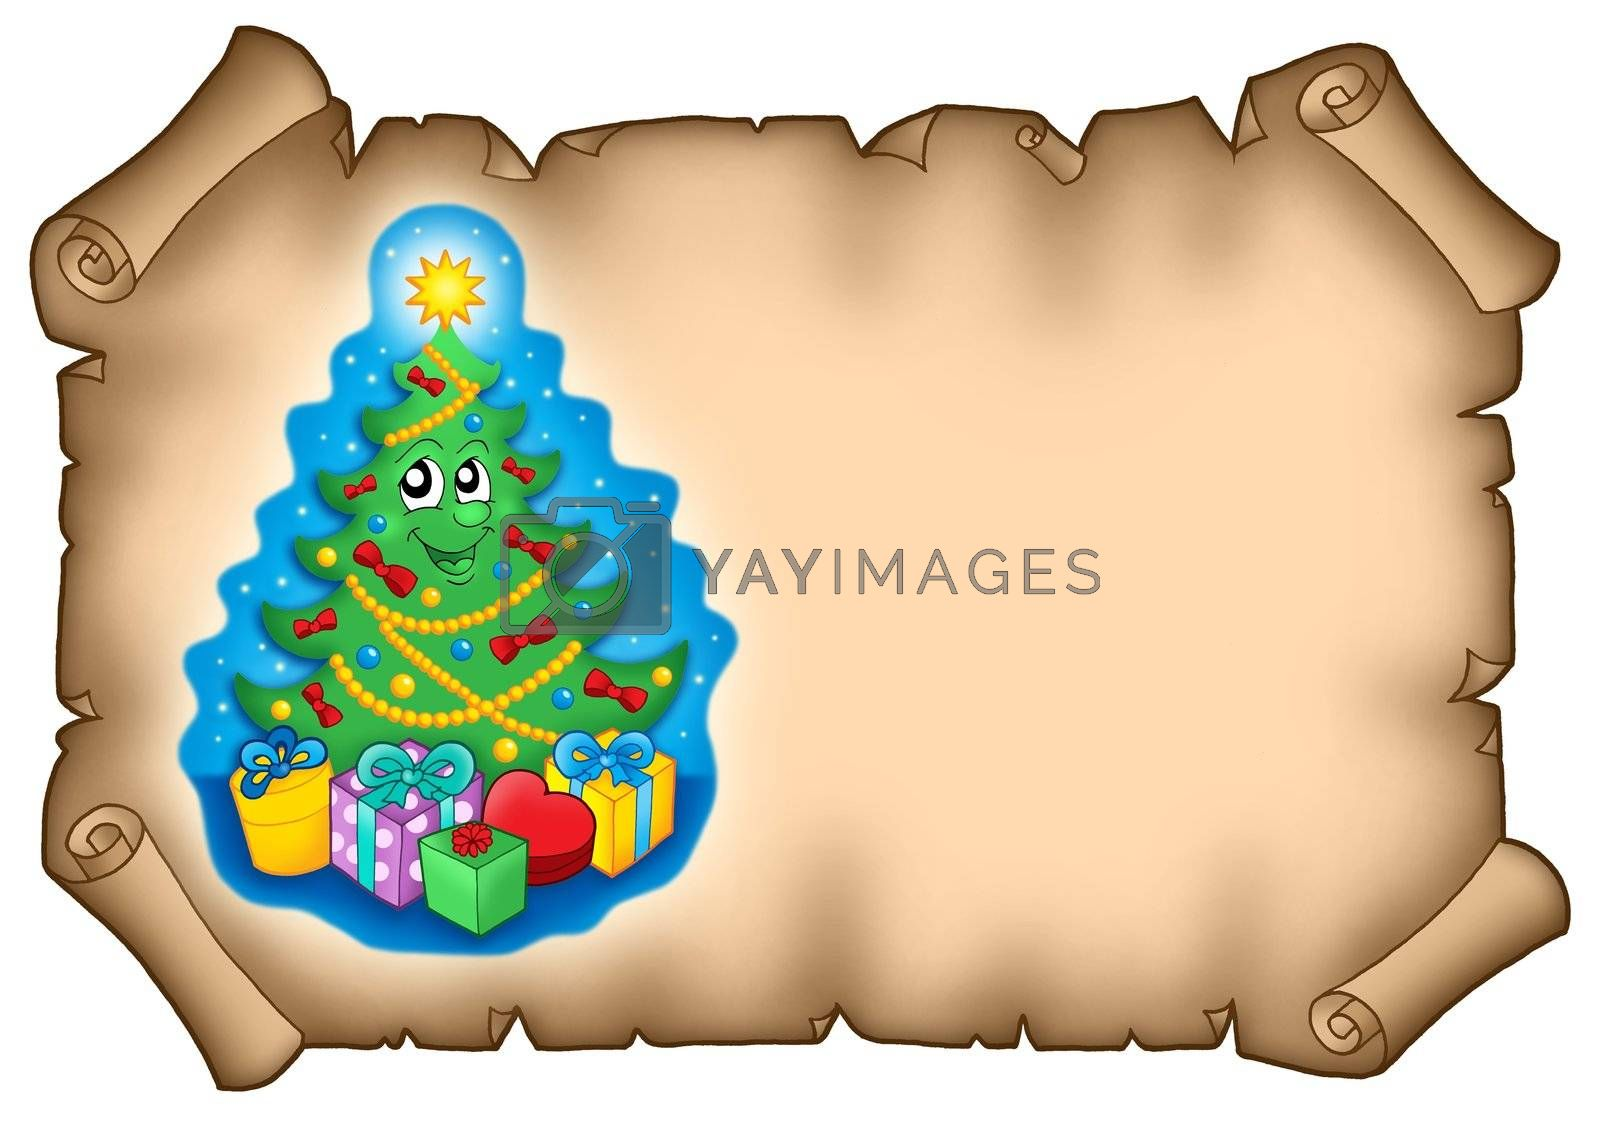 Parchment with Christmas tree - color illustration.